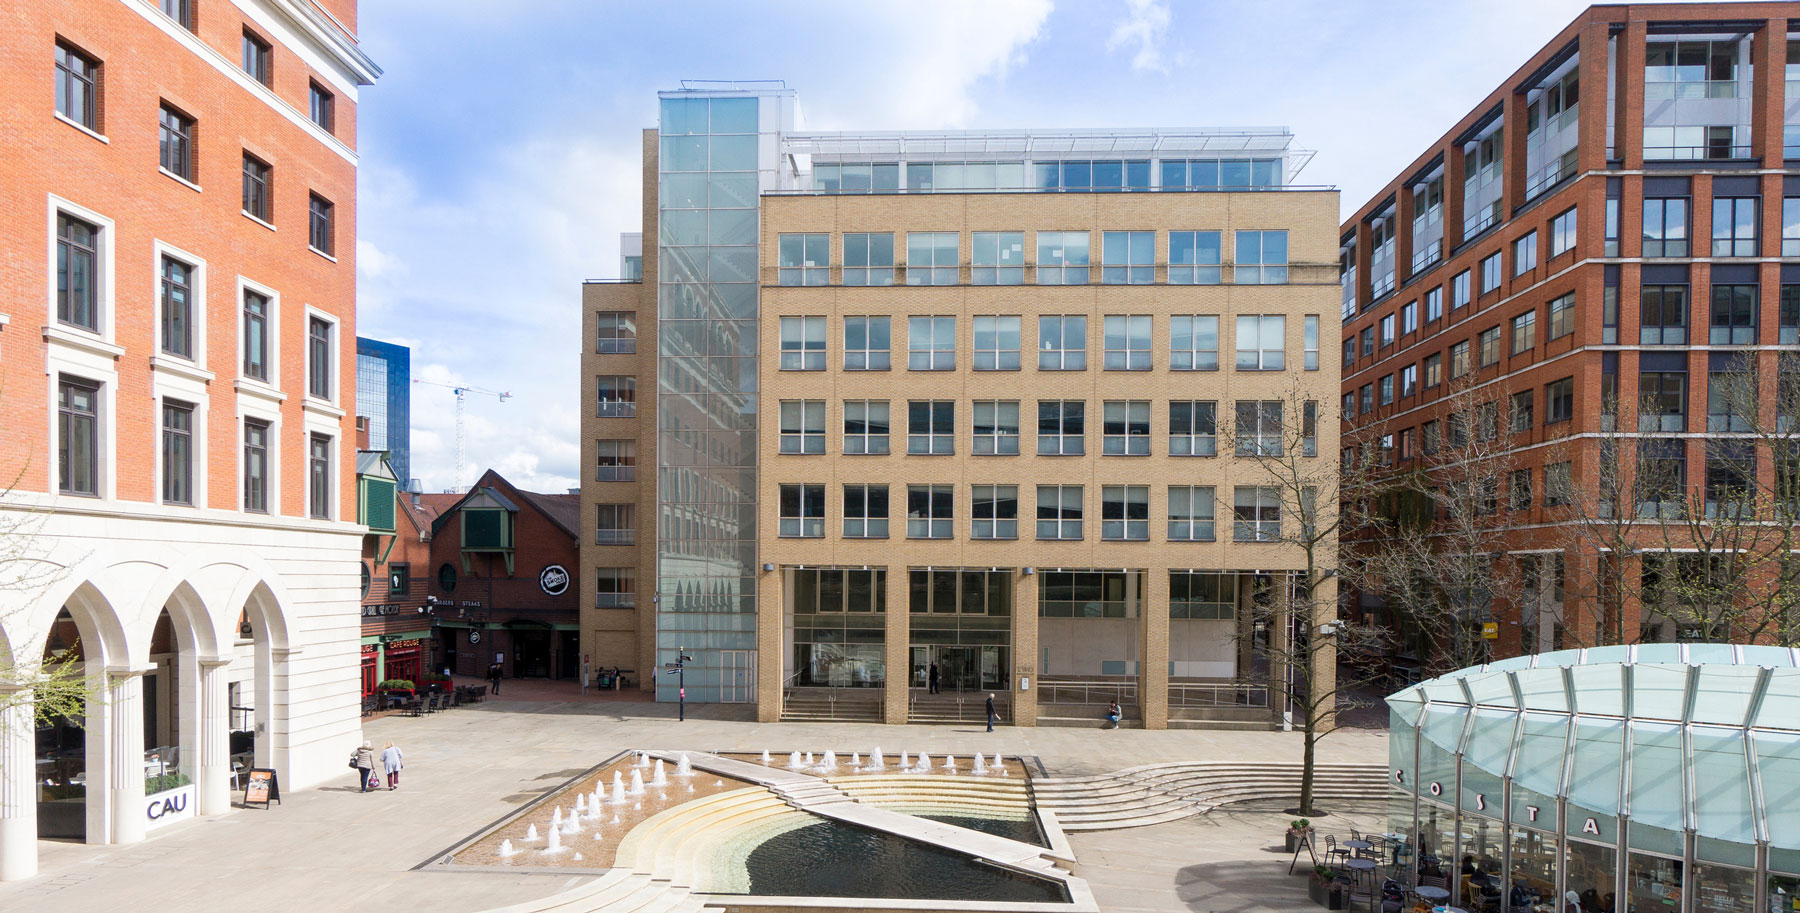 Aver Property acquires 2 Brindleyplace in Birmingham in £29 million debut deal